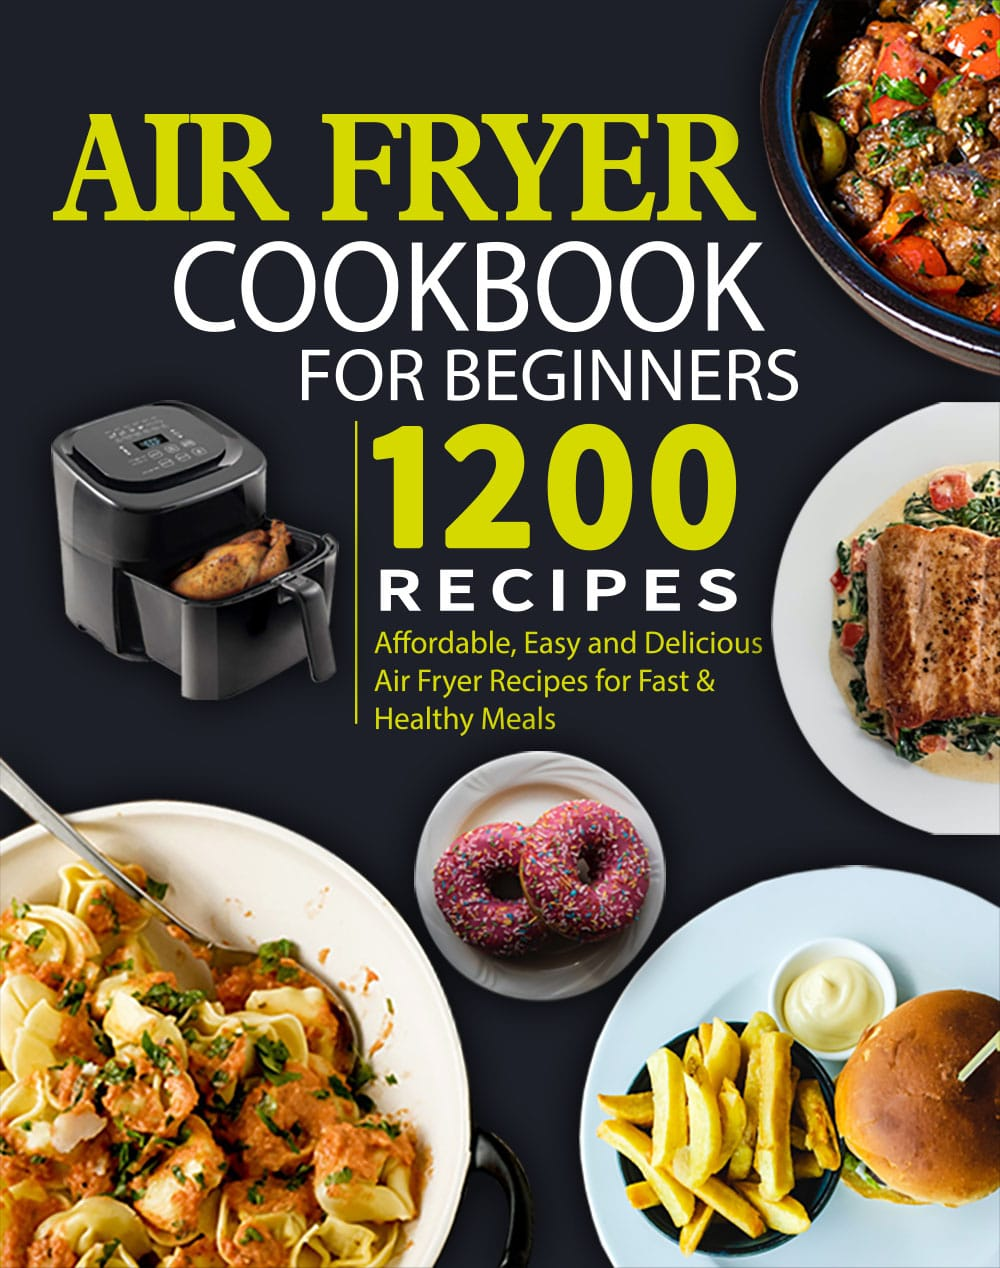 Download Complete Air Fryer Cookbook With 1200 Effortless Recipes